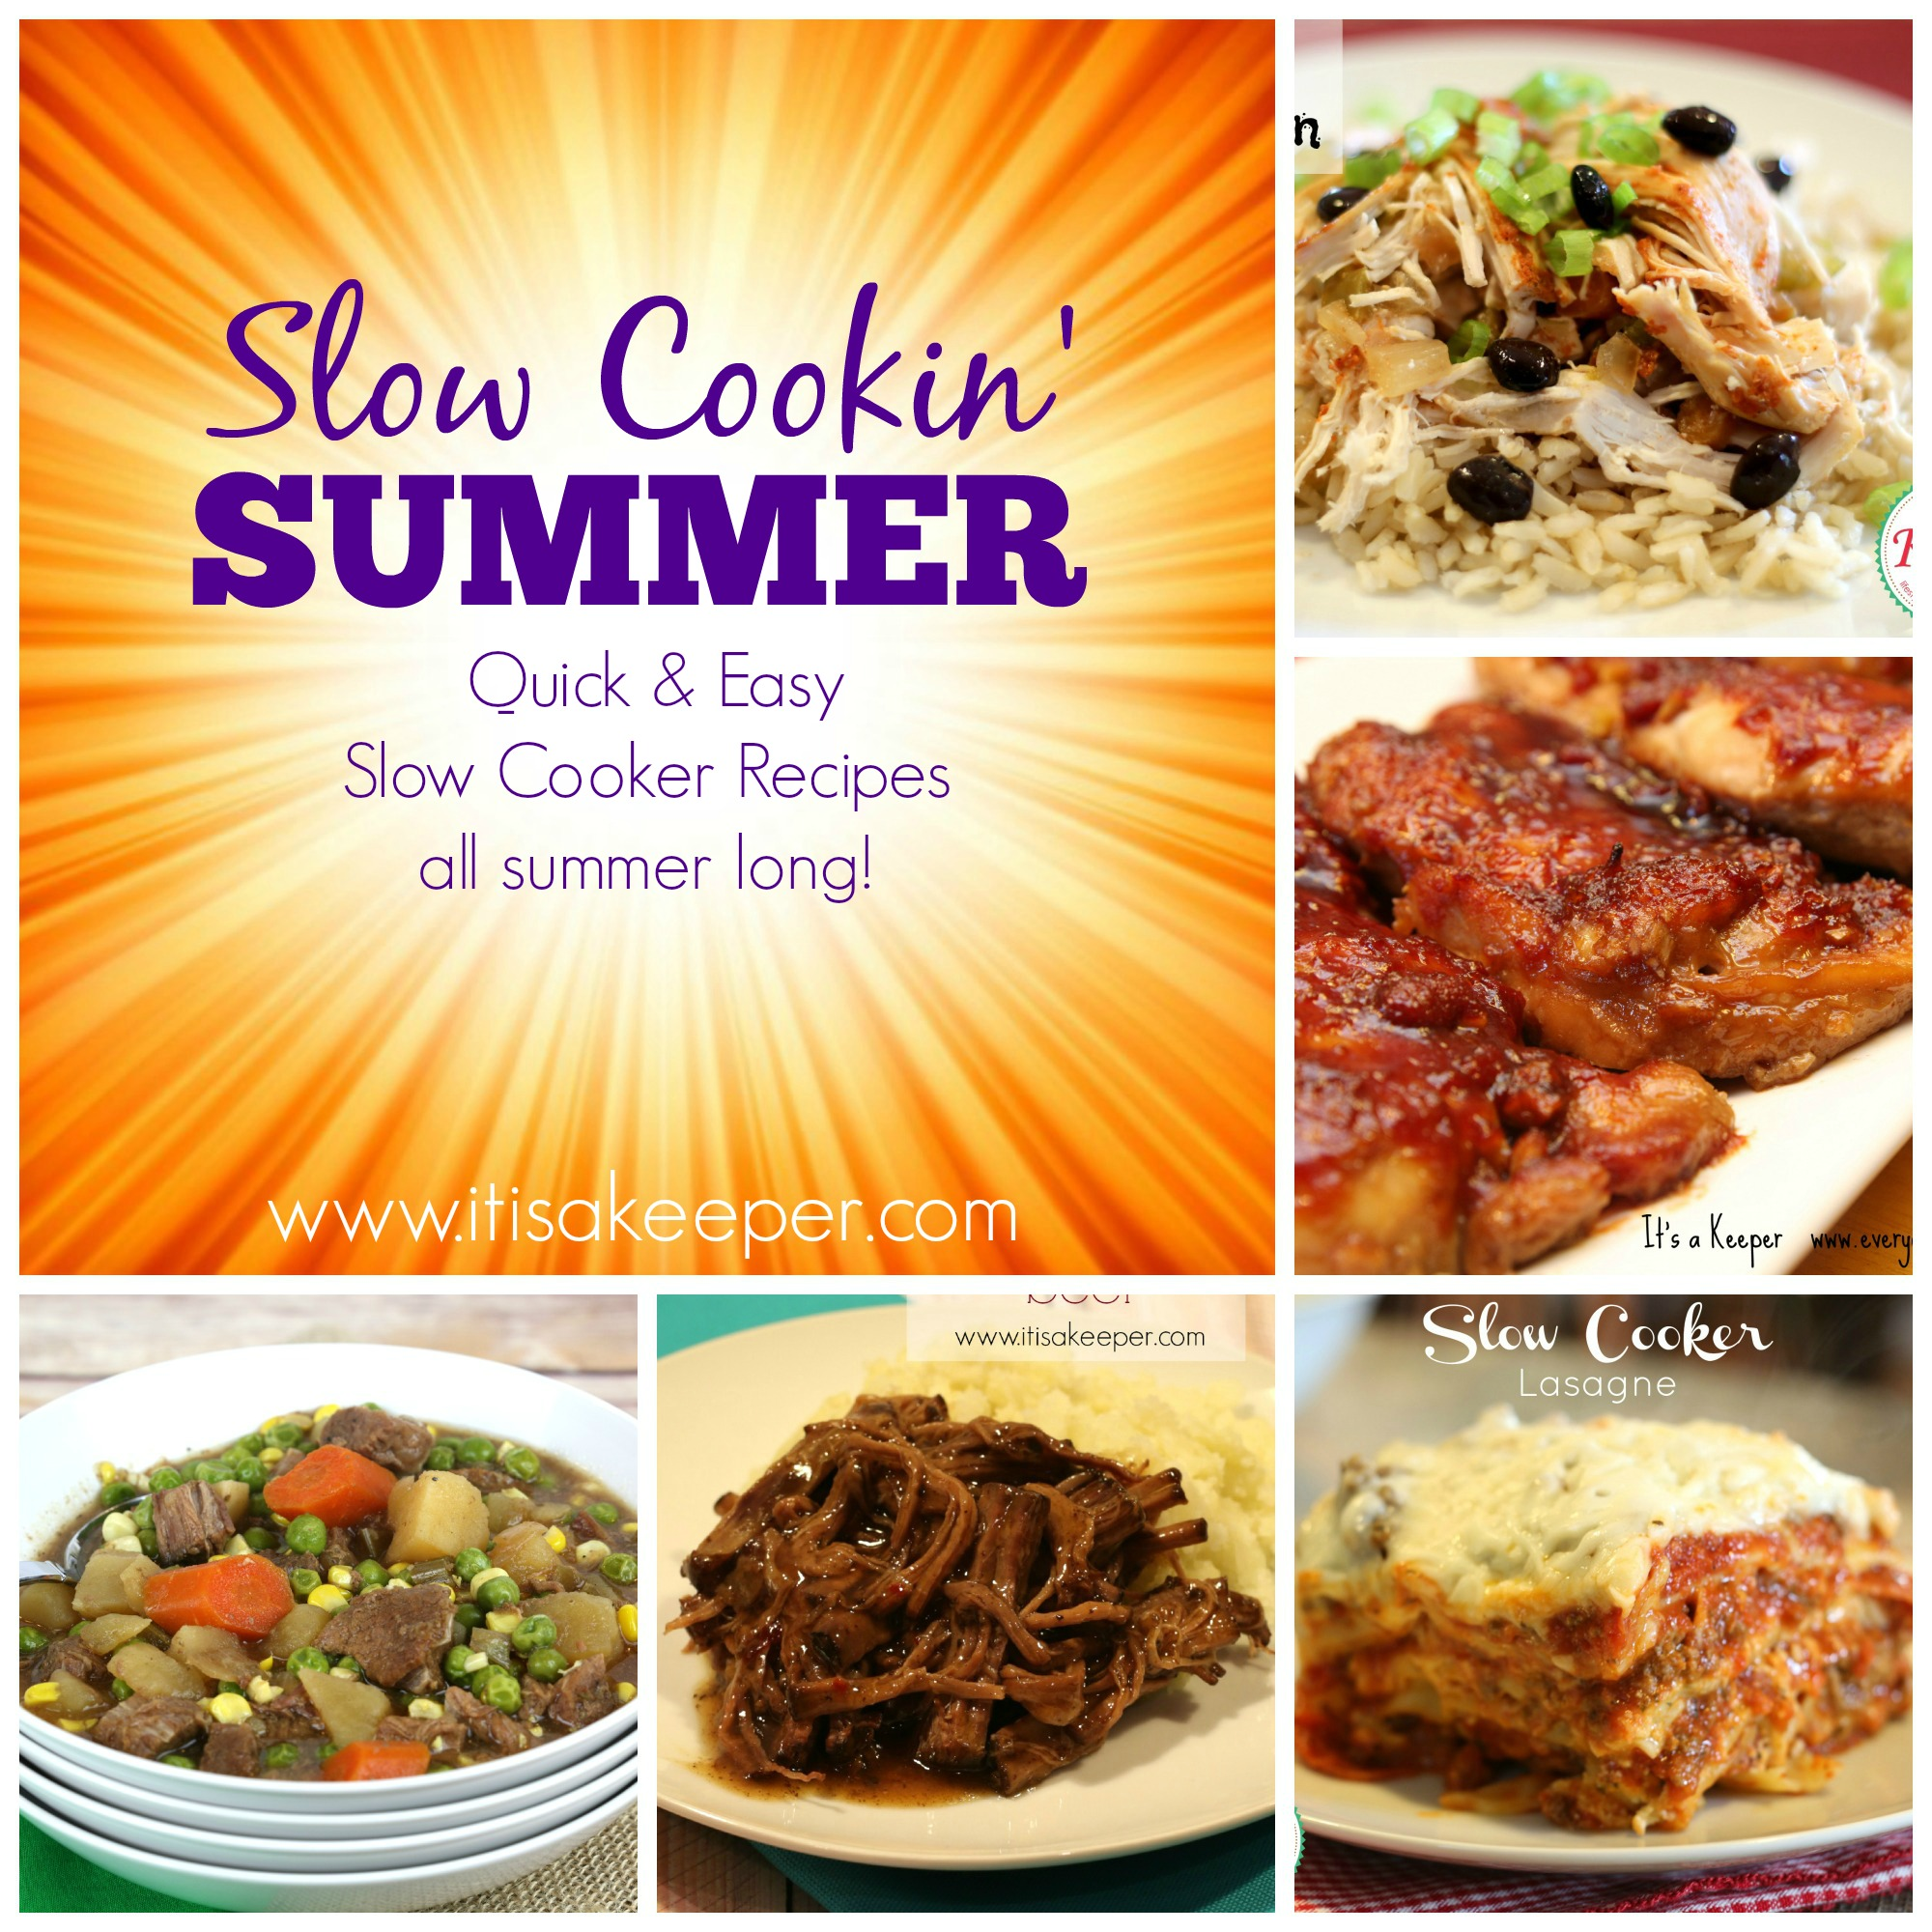 Slow Cookin' Summer Series: Easy Recipes for a Slow Cooker